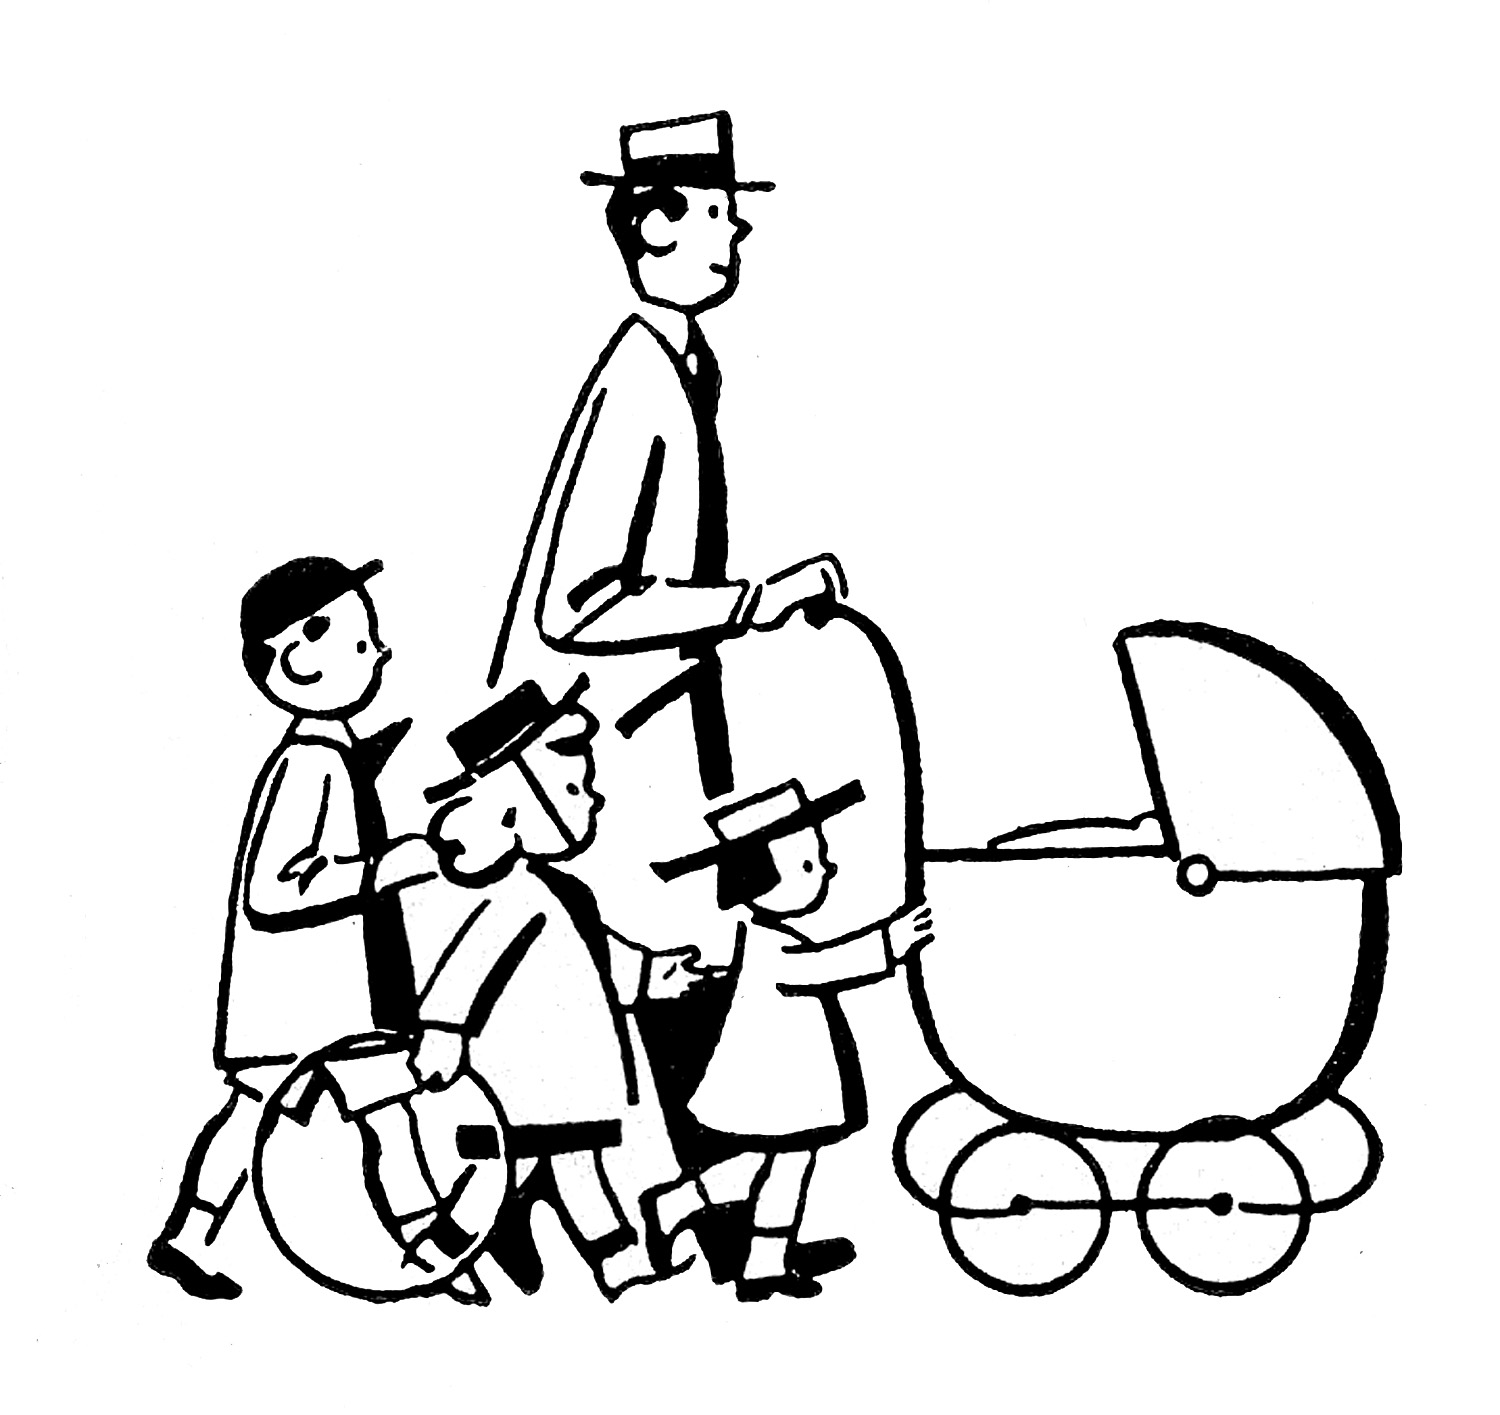 hight resolution of family black and white family black and white clipart 4